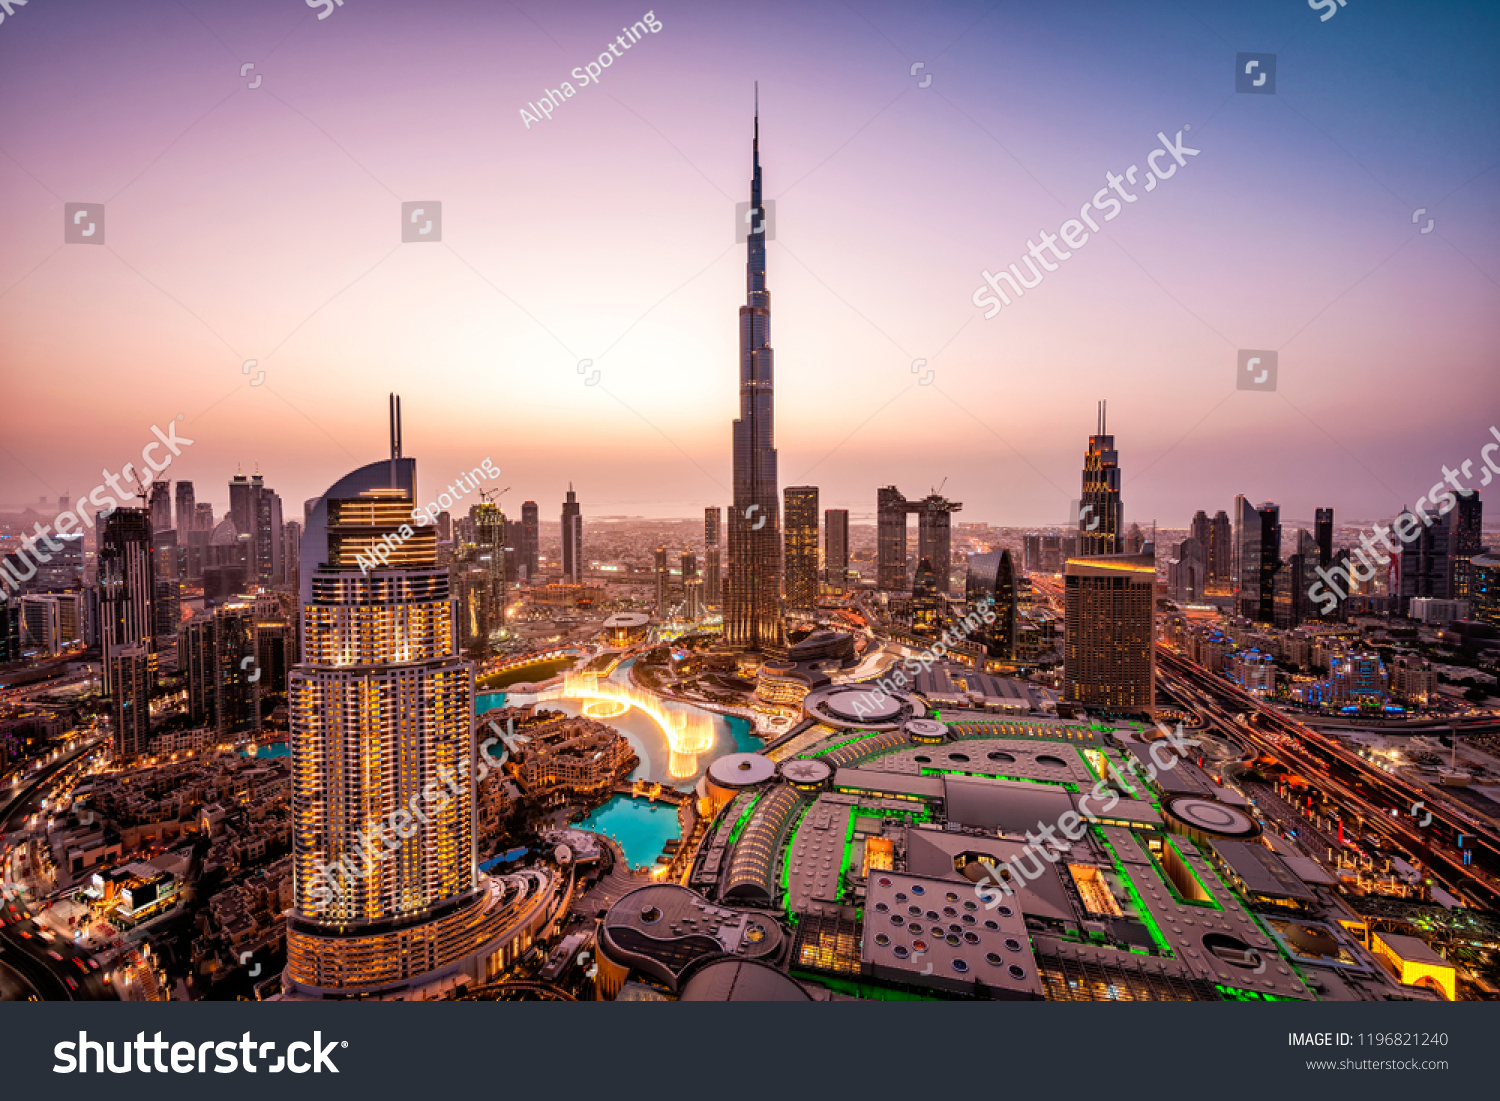 WOW view of Dubai skyline at night. City lights popping. Dancing fountain display. Luxury travel holiday concept.   #1196821240